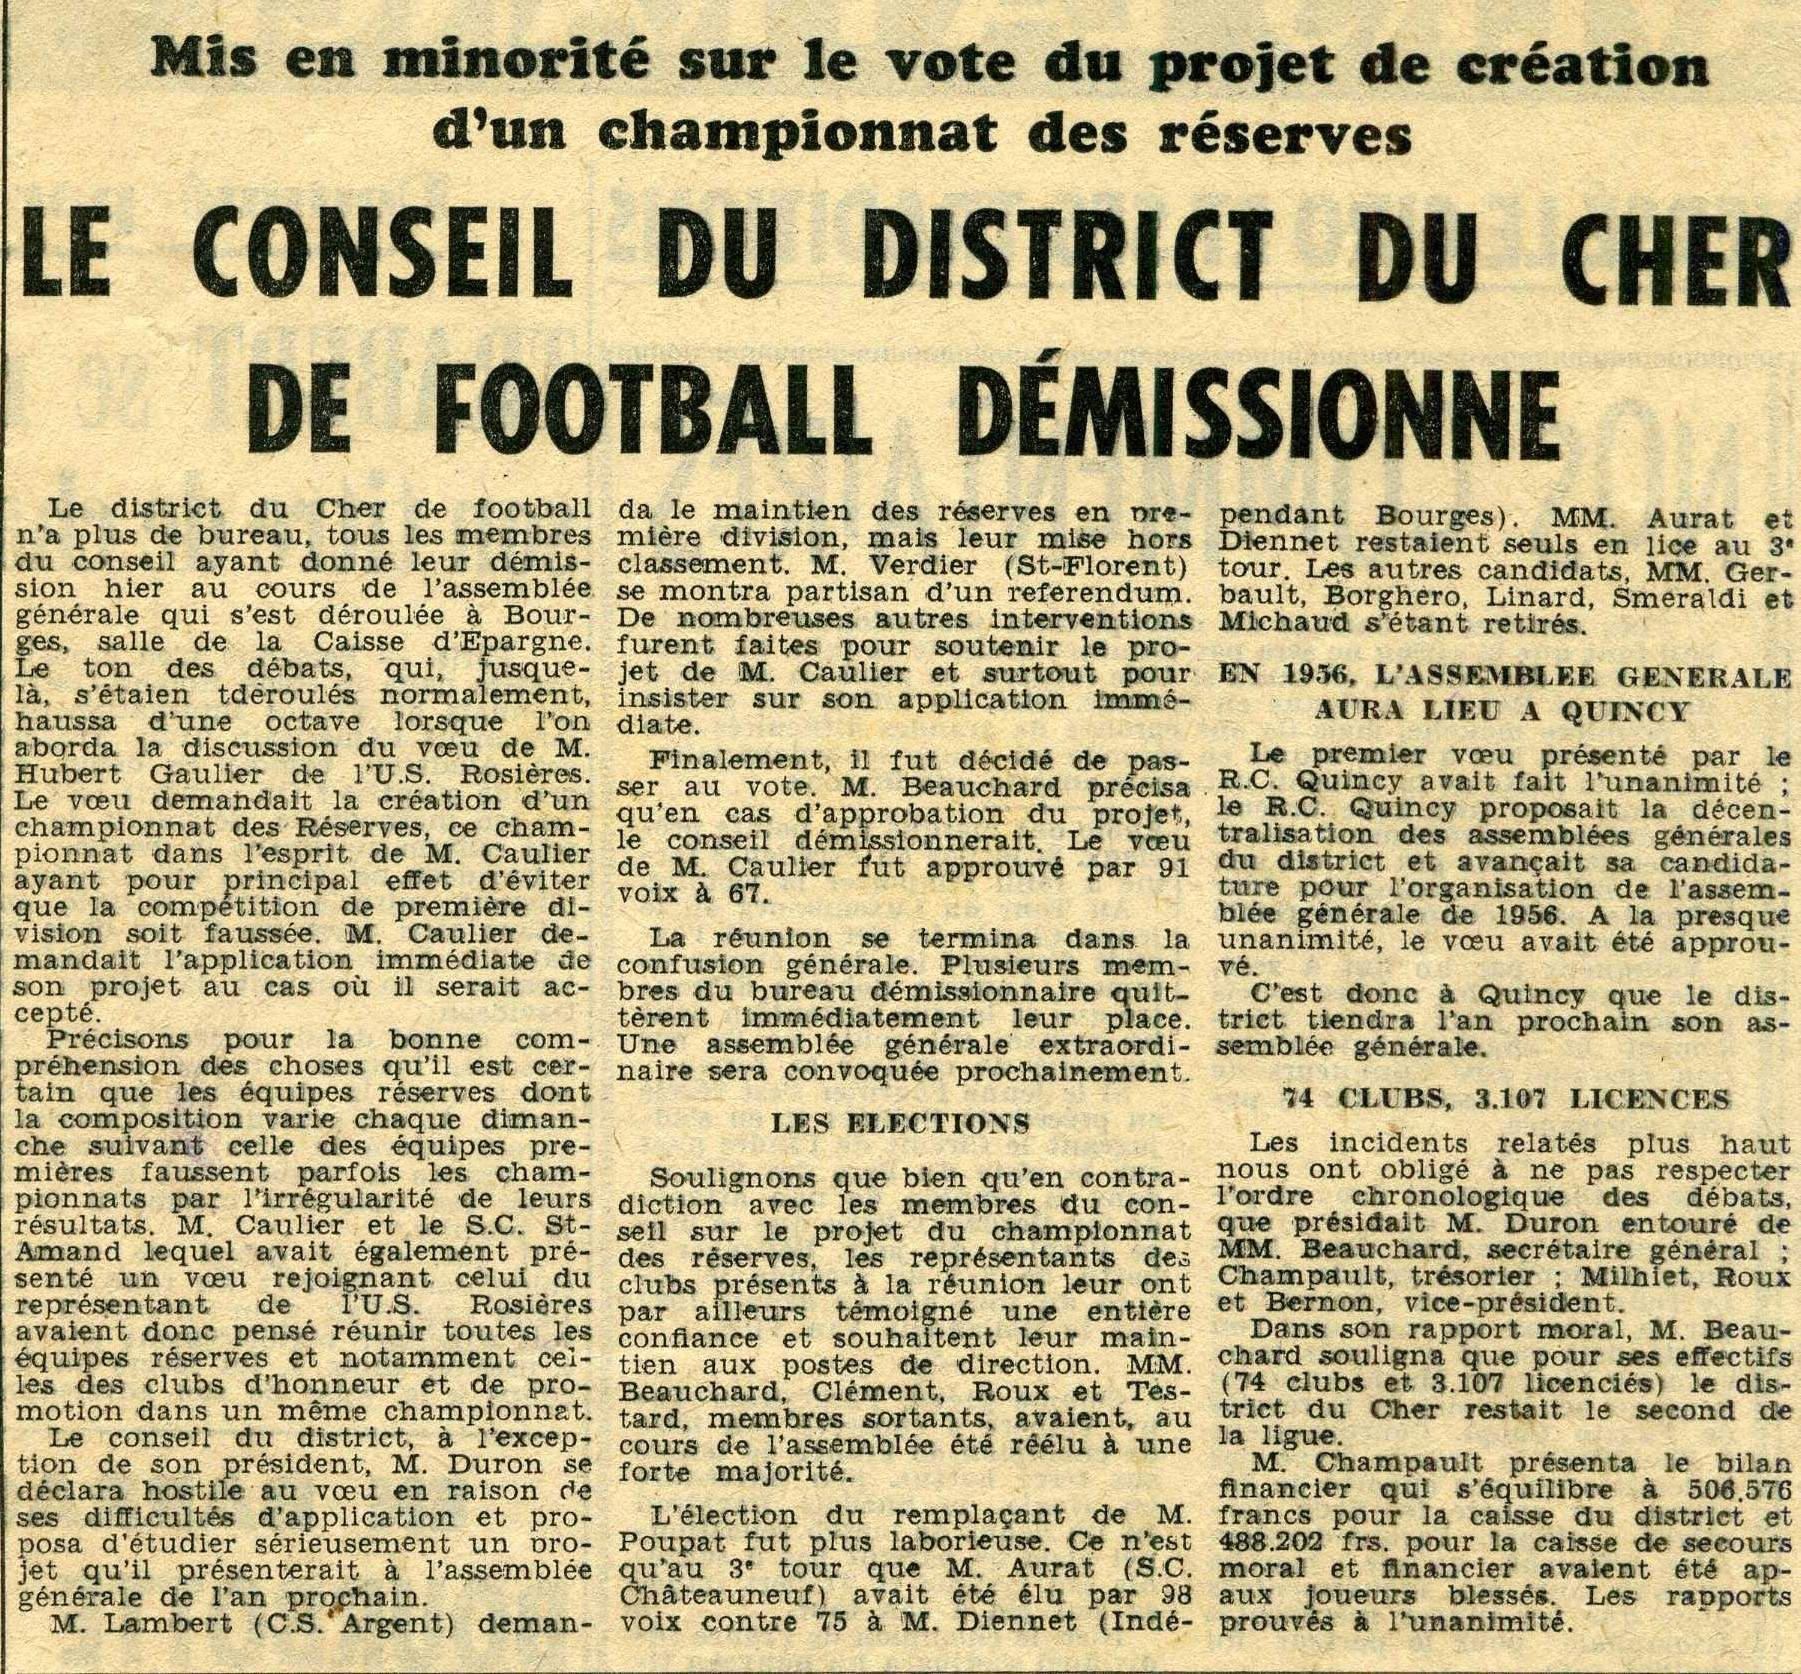 AG du District du Cher de football tumultueux